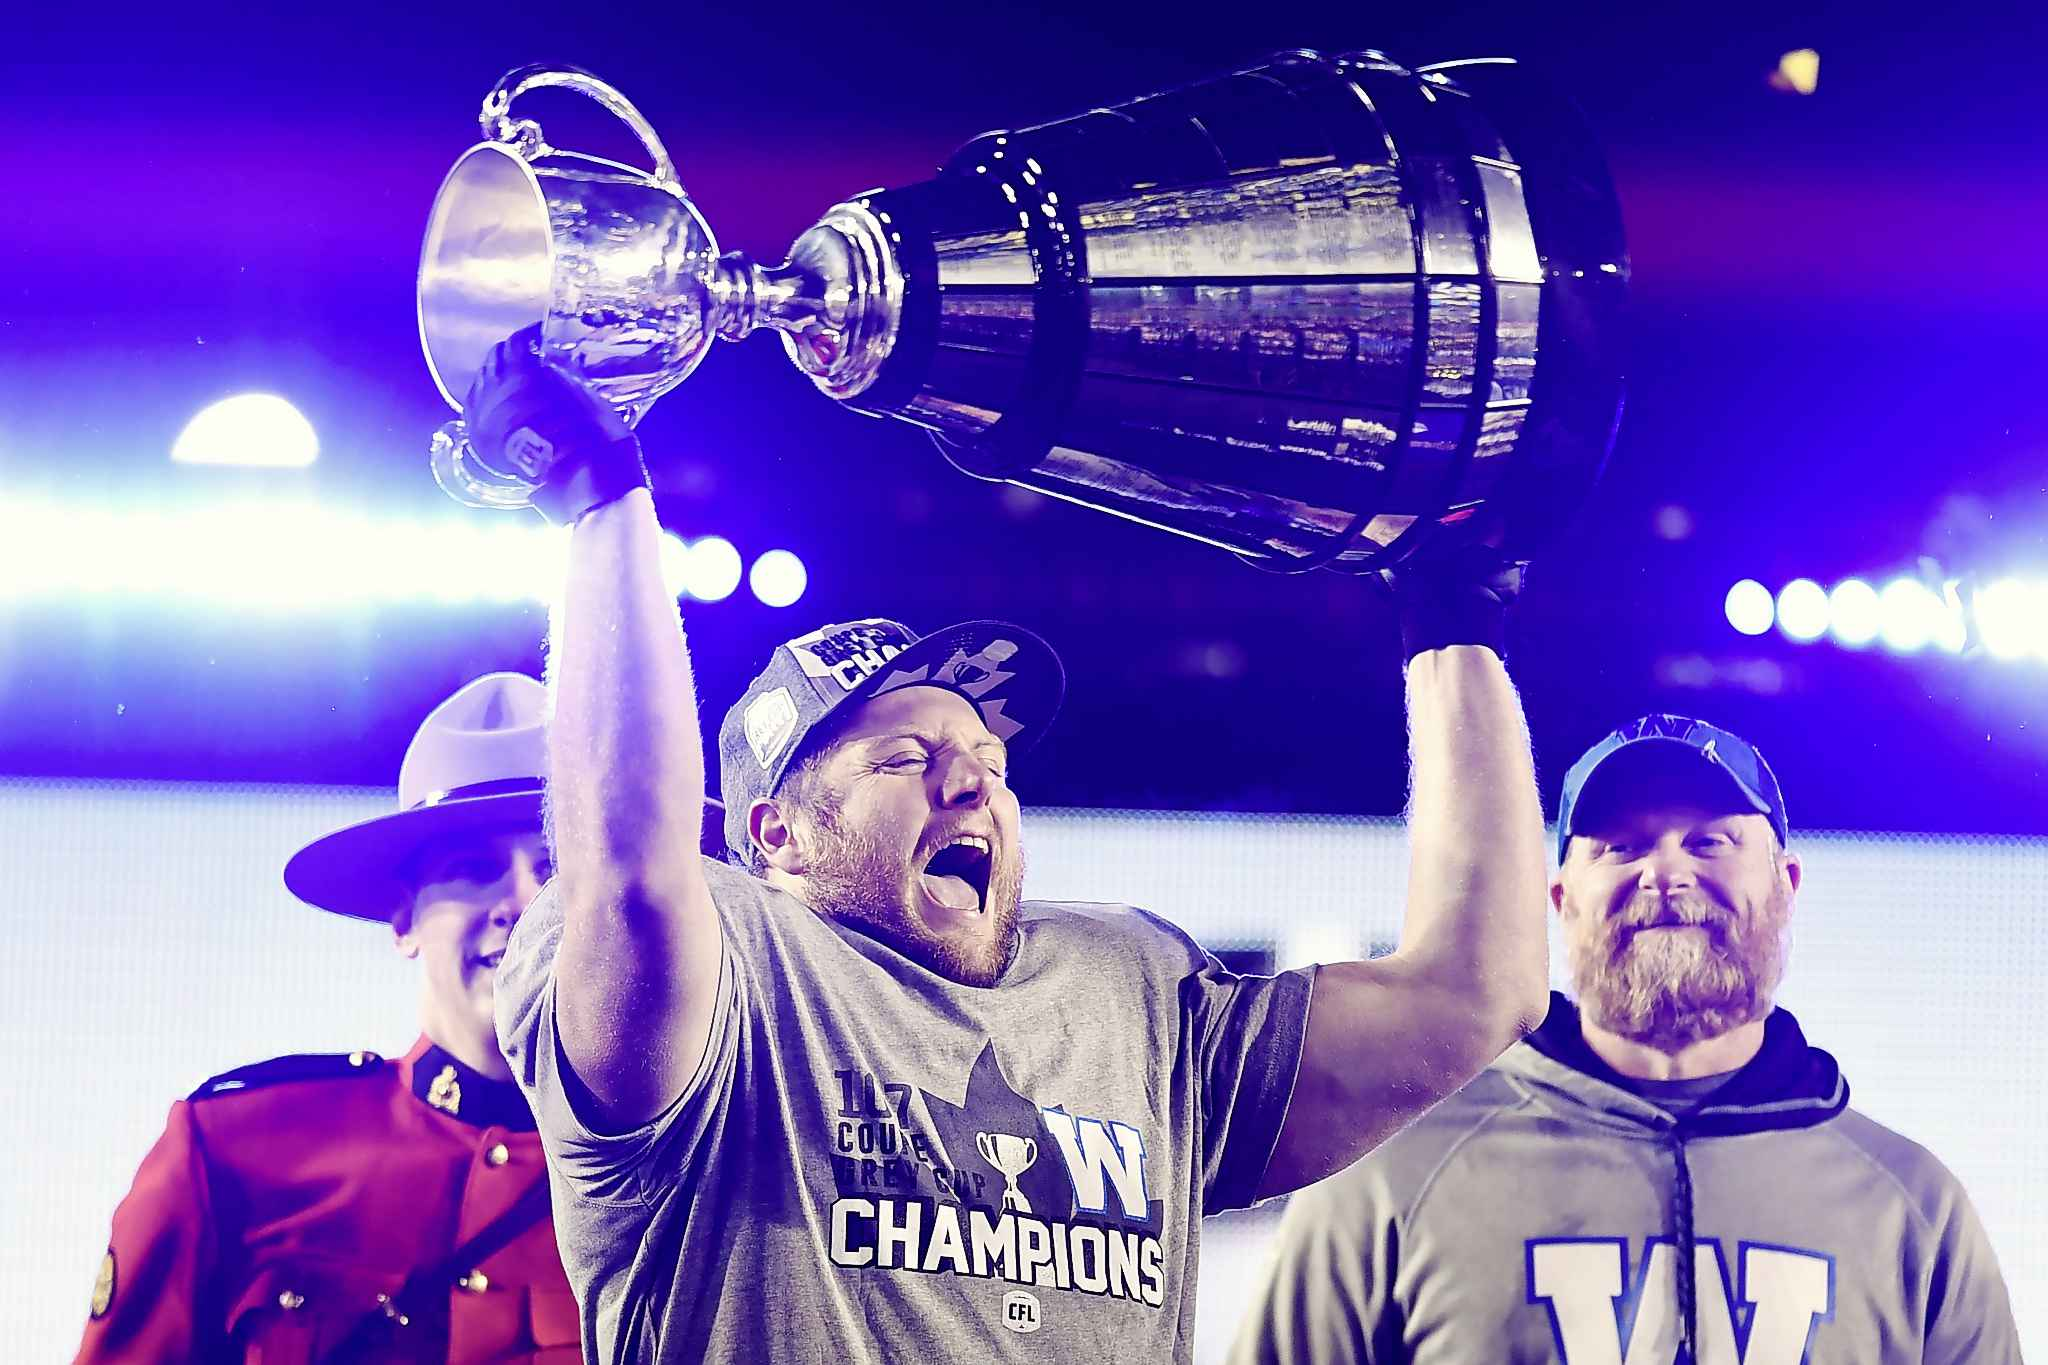 Winnipeg Blue Bombers' Jake Thomas lifts the Cup as head coach Mike O'Shea looks on as they celebrate winning the 107th Grey Cup against the Hamilton Tiger Cats in Calgary, Alta., Sunday, November 24, 2019. THE CANADIAN PRESS/Frank Gunn